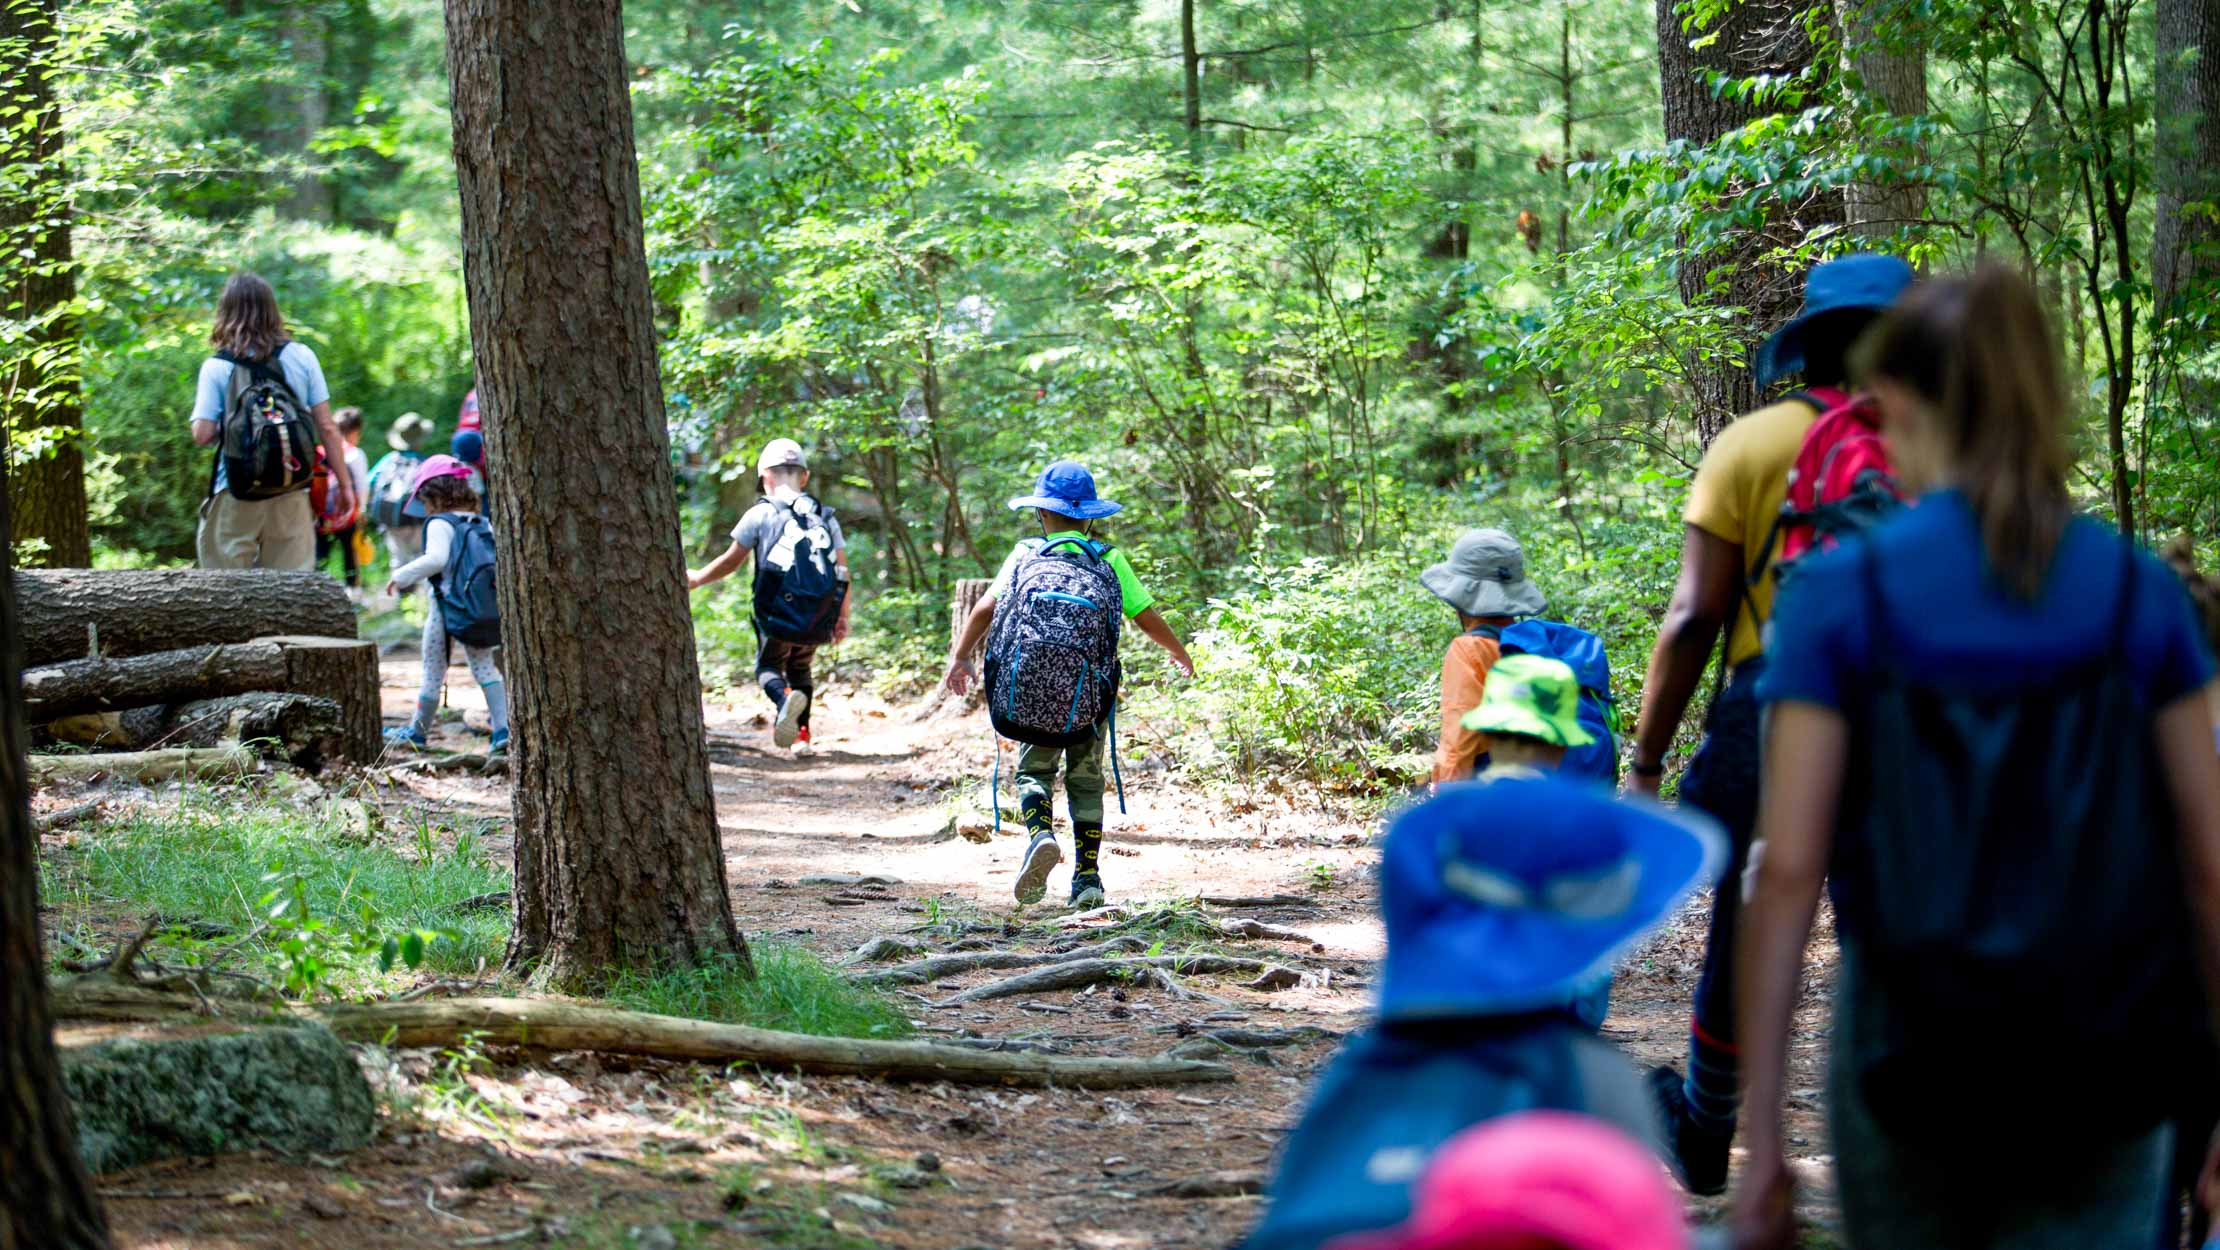 Campers hiking through the woods